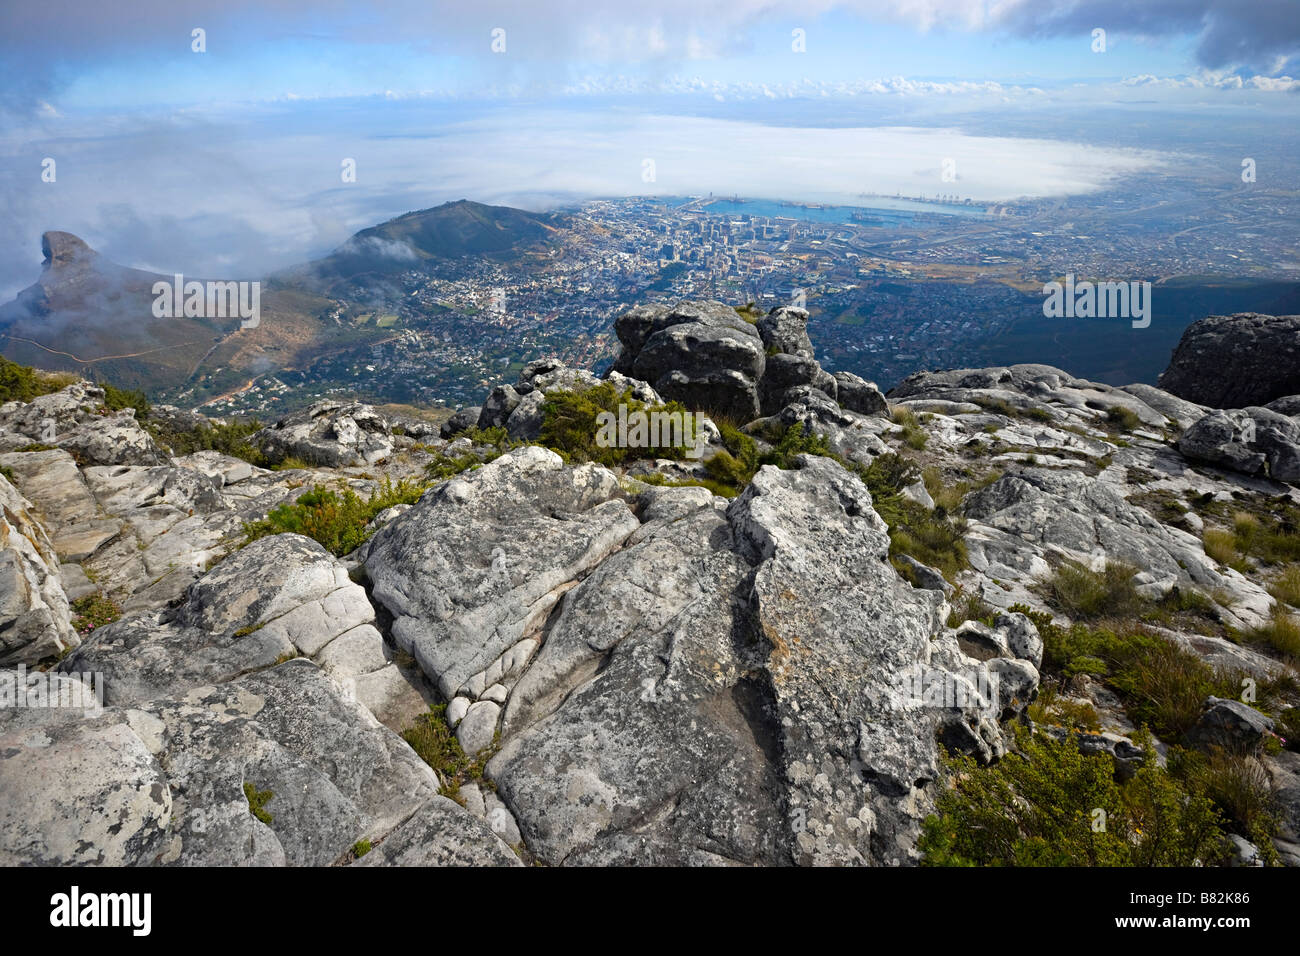 scenic view looking down from the top of table mountain onto Cape Town, South Africa - Stock Image